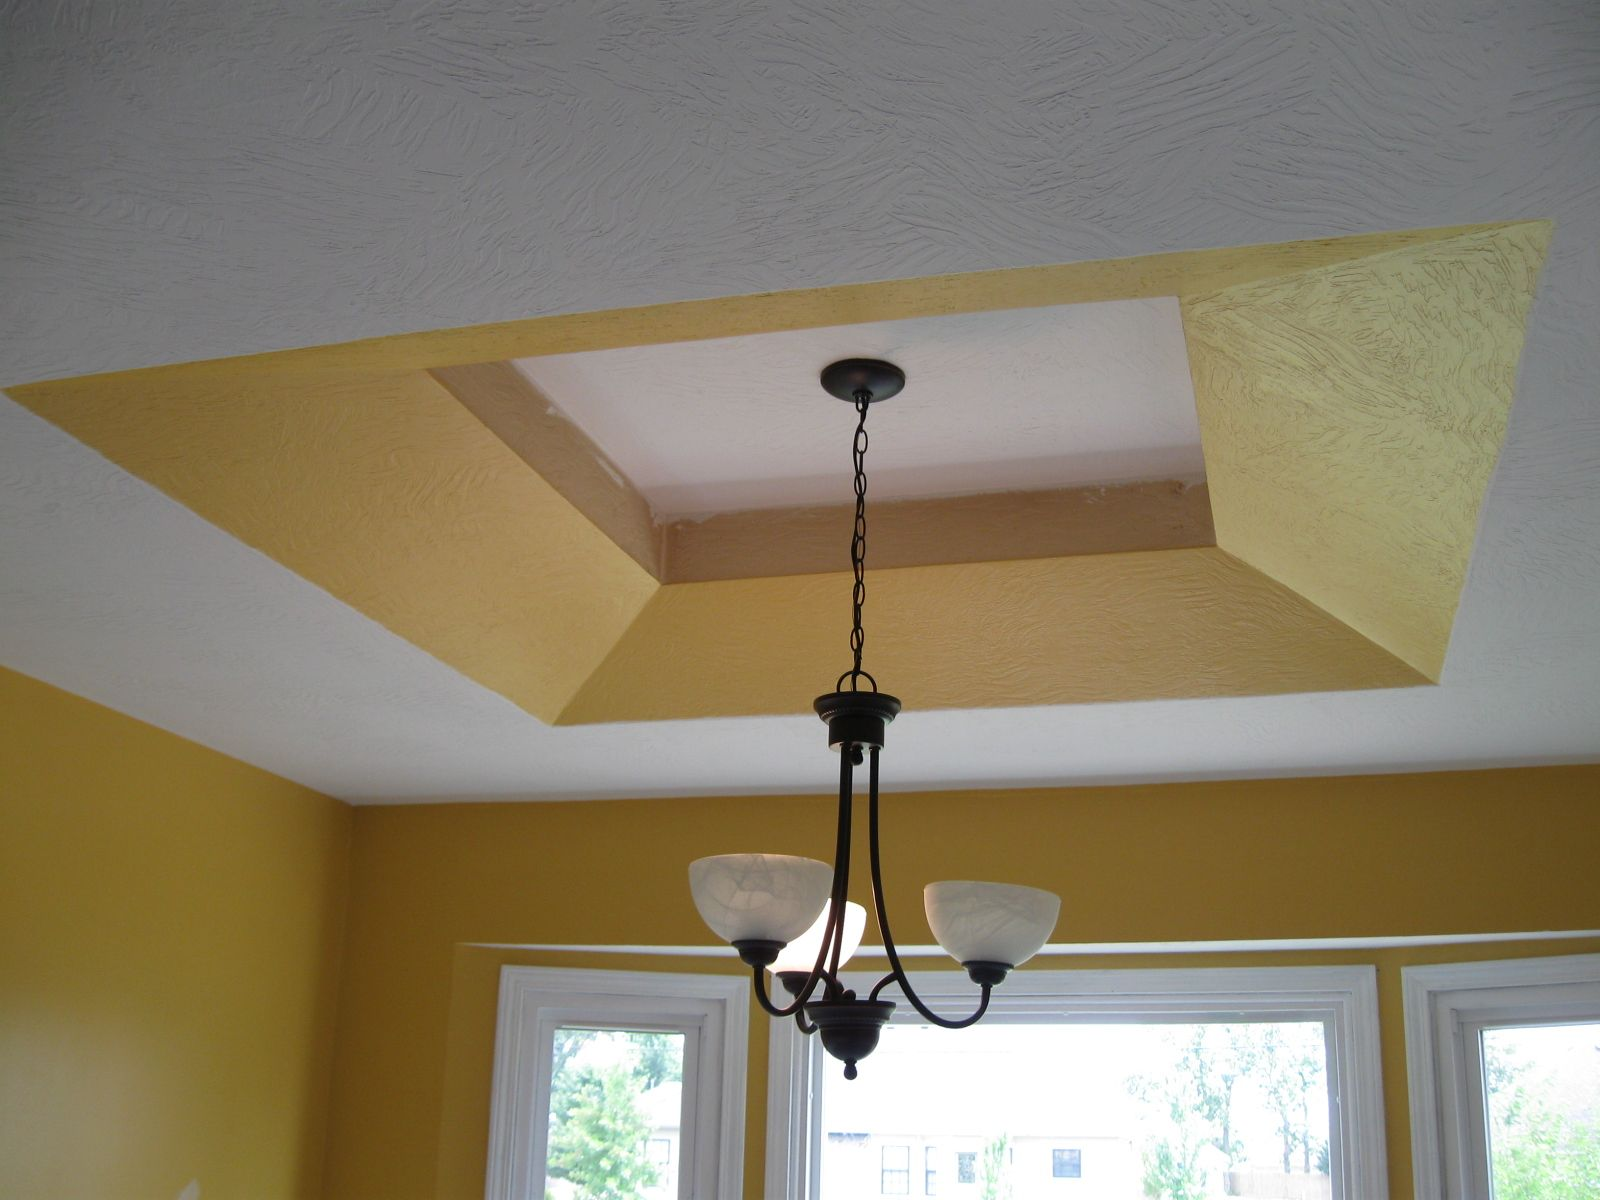 tray lighting ceiling. Kitchen Tray Ceiling Recessed Lighting | Ideas For The House Pinterest Tray, Ceilings And C